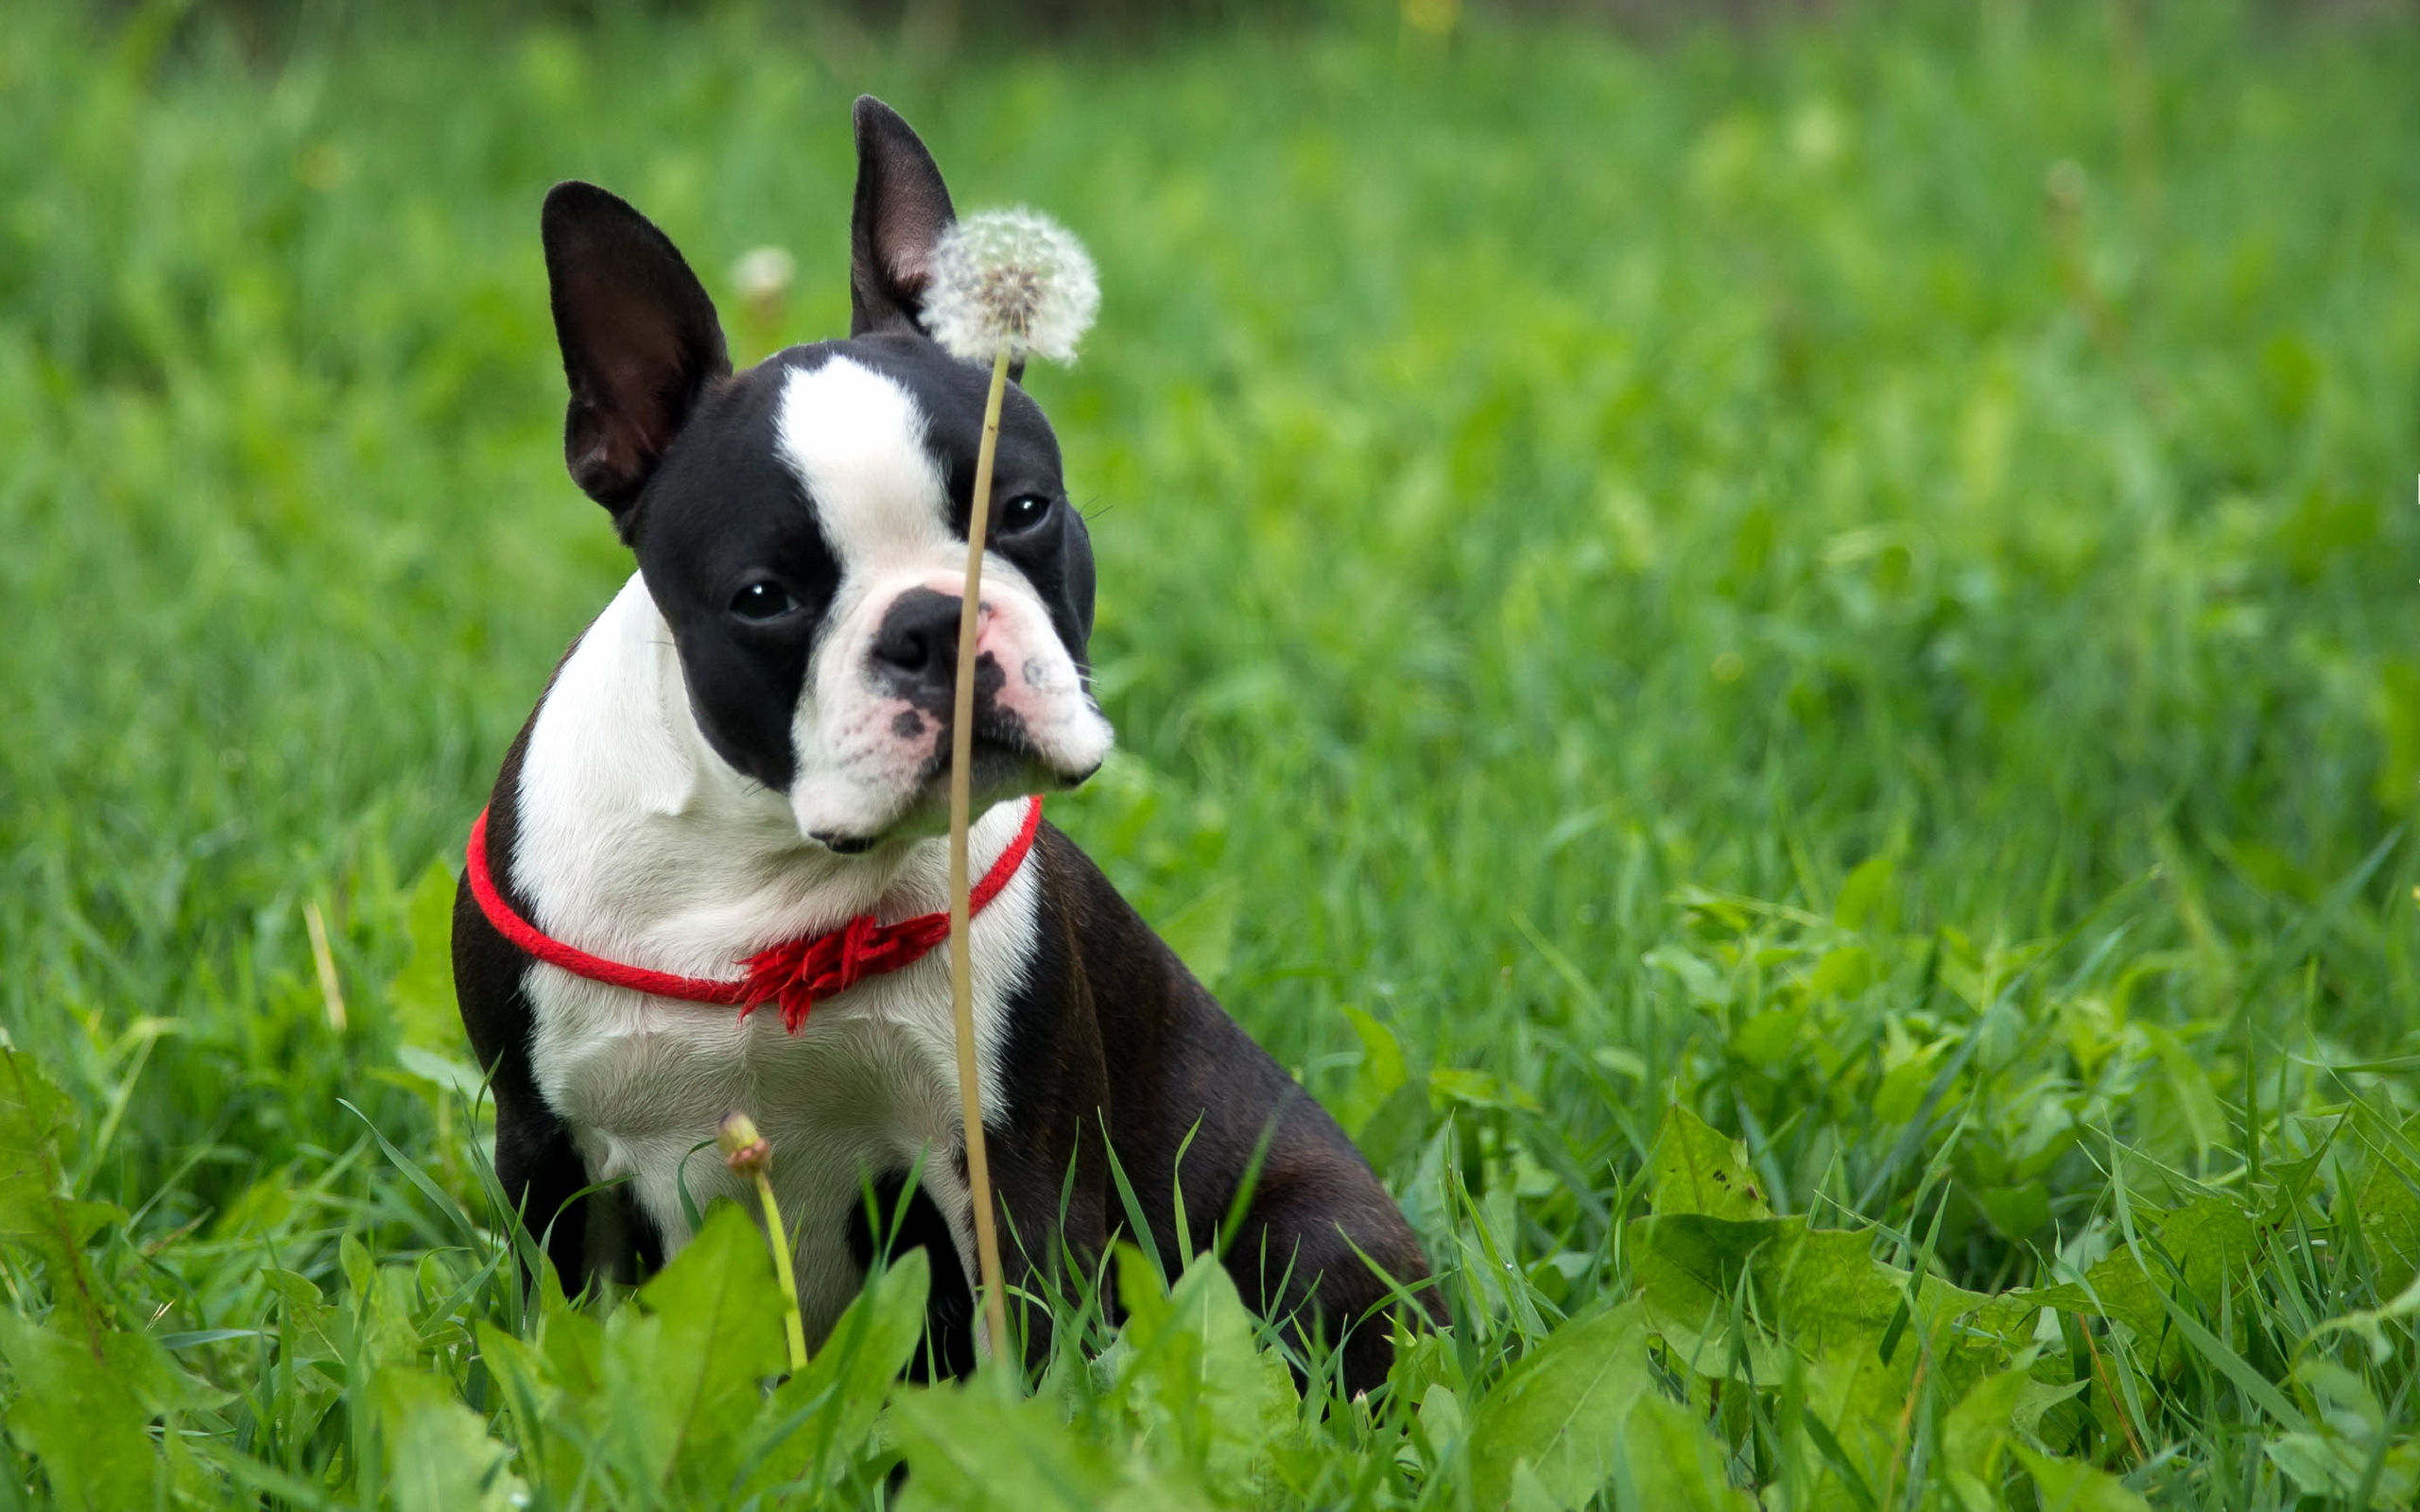 Cute Wallpapers Of Dogs And Puppies 7 Boston Terrier Hd Wallpapers Background Images